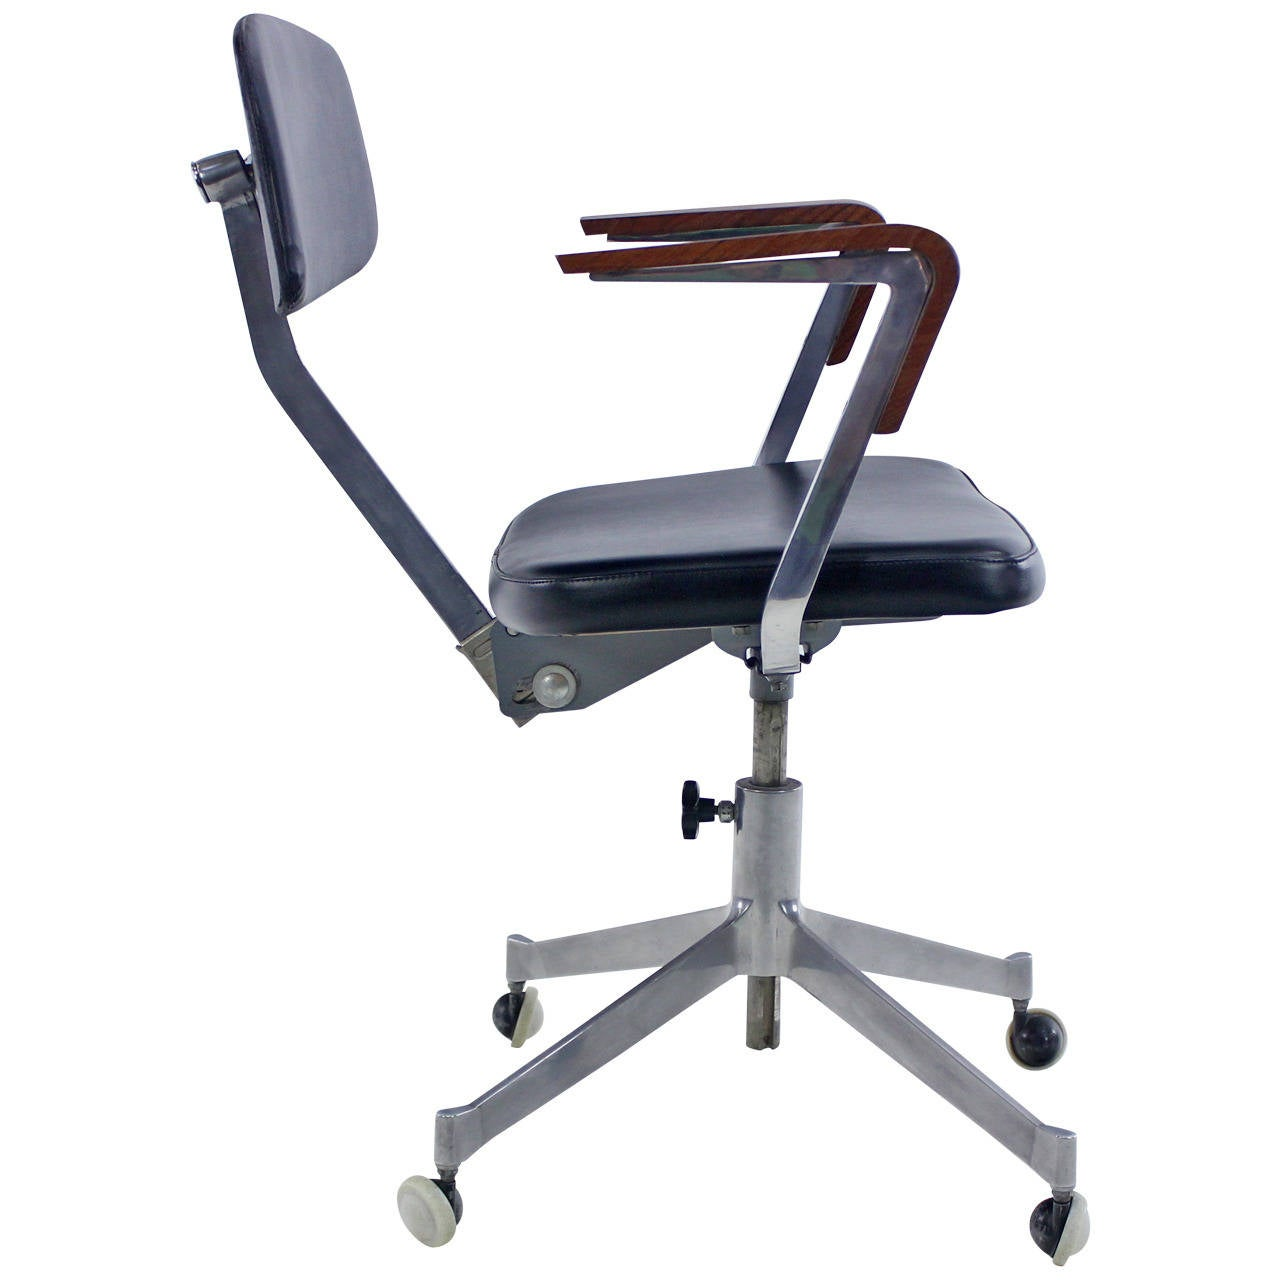 desk chair utm white leather accent danish modern office by cardinal at 1stdibs